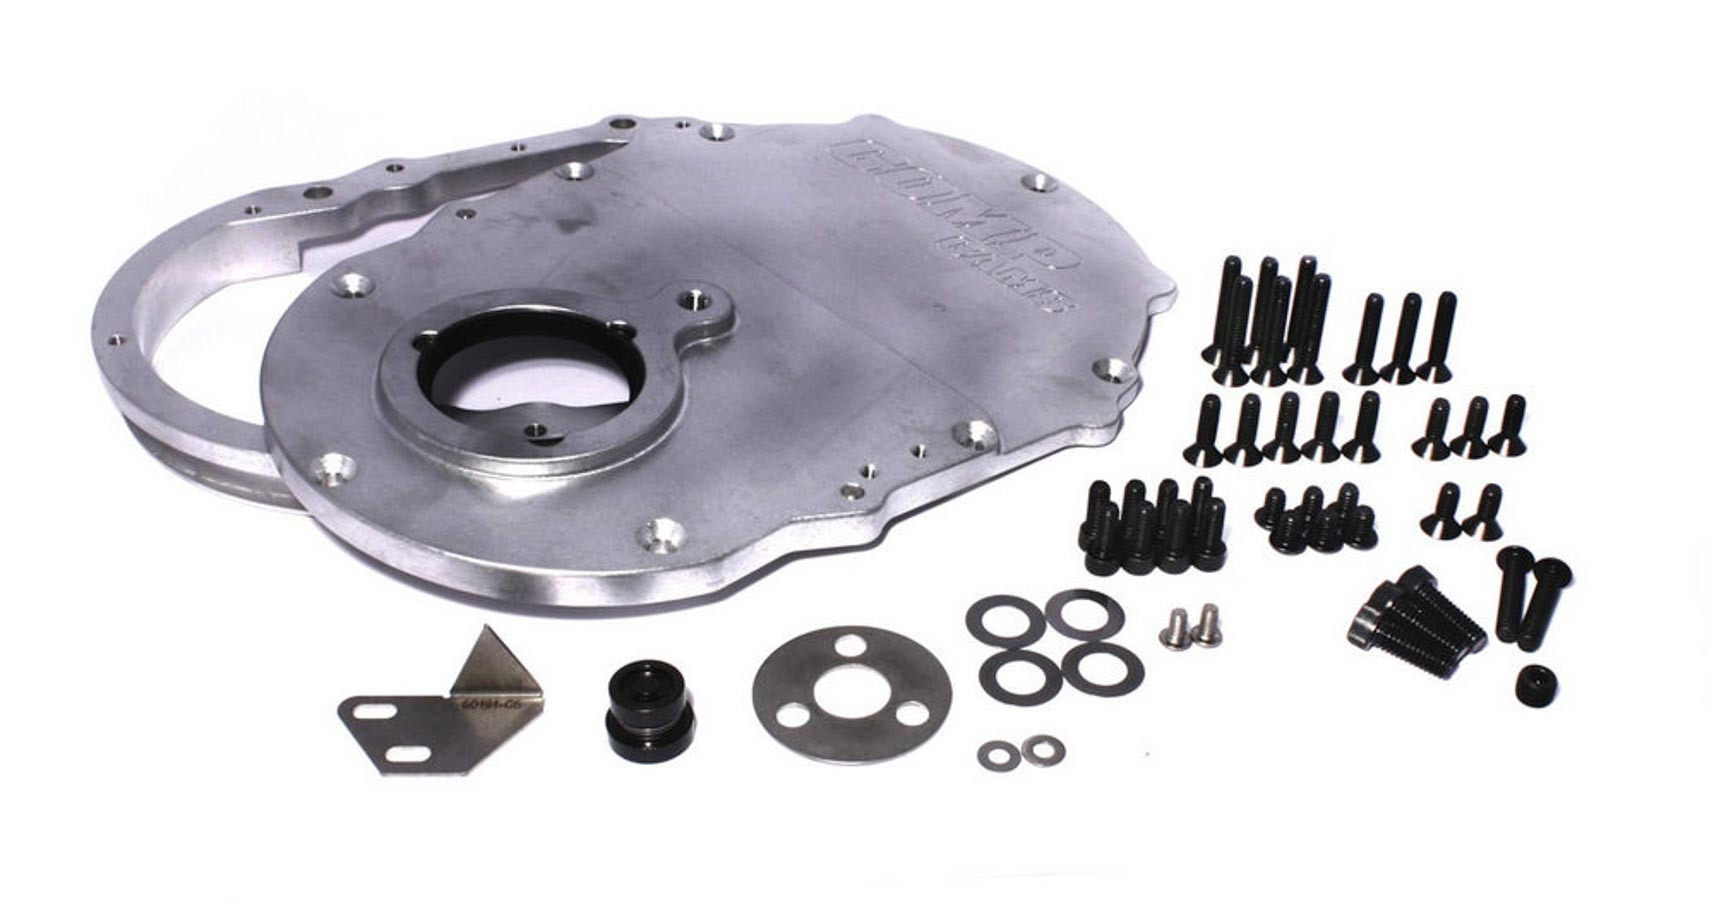 Comp Cams 217 Timing Cover, 2 Piece, Gaskets / Hardware / Seal / Timing Tab Included, Aluminum, Natural, Big Block Chevy, Kit